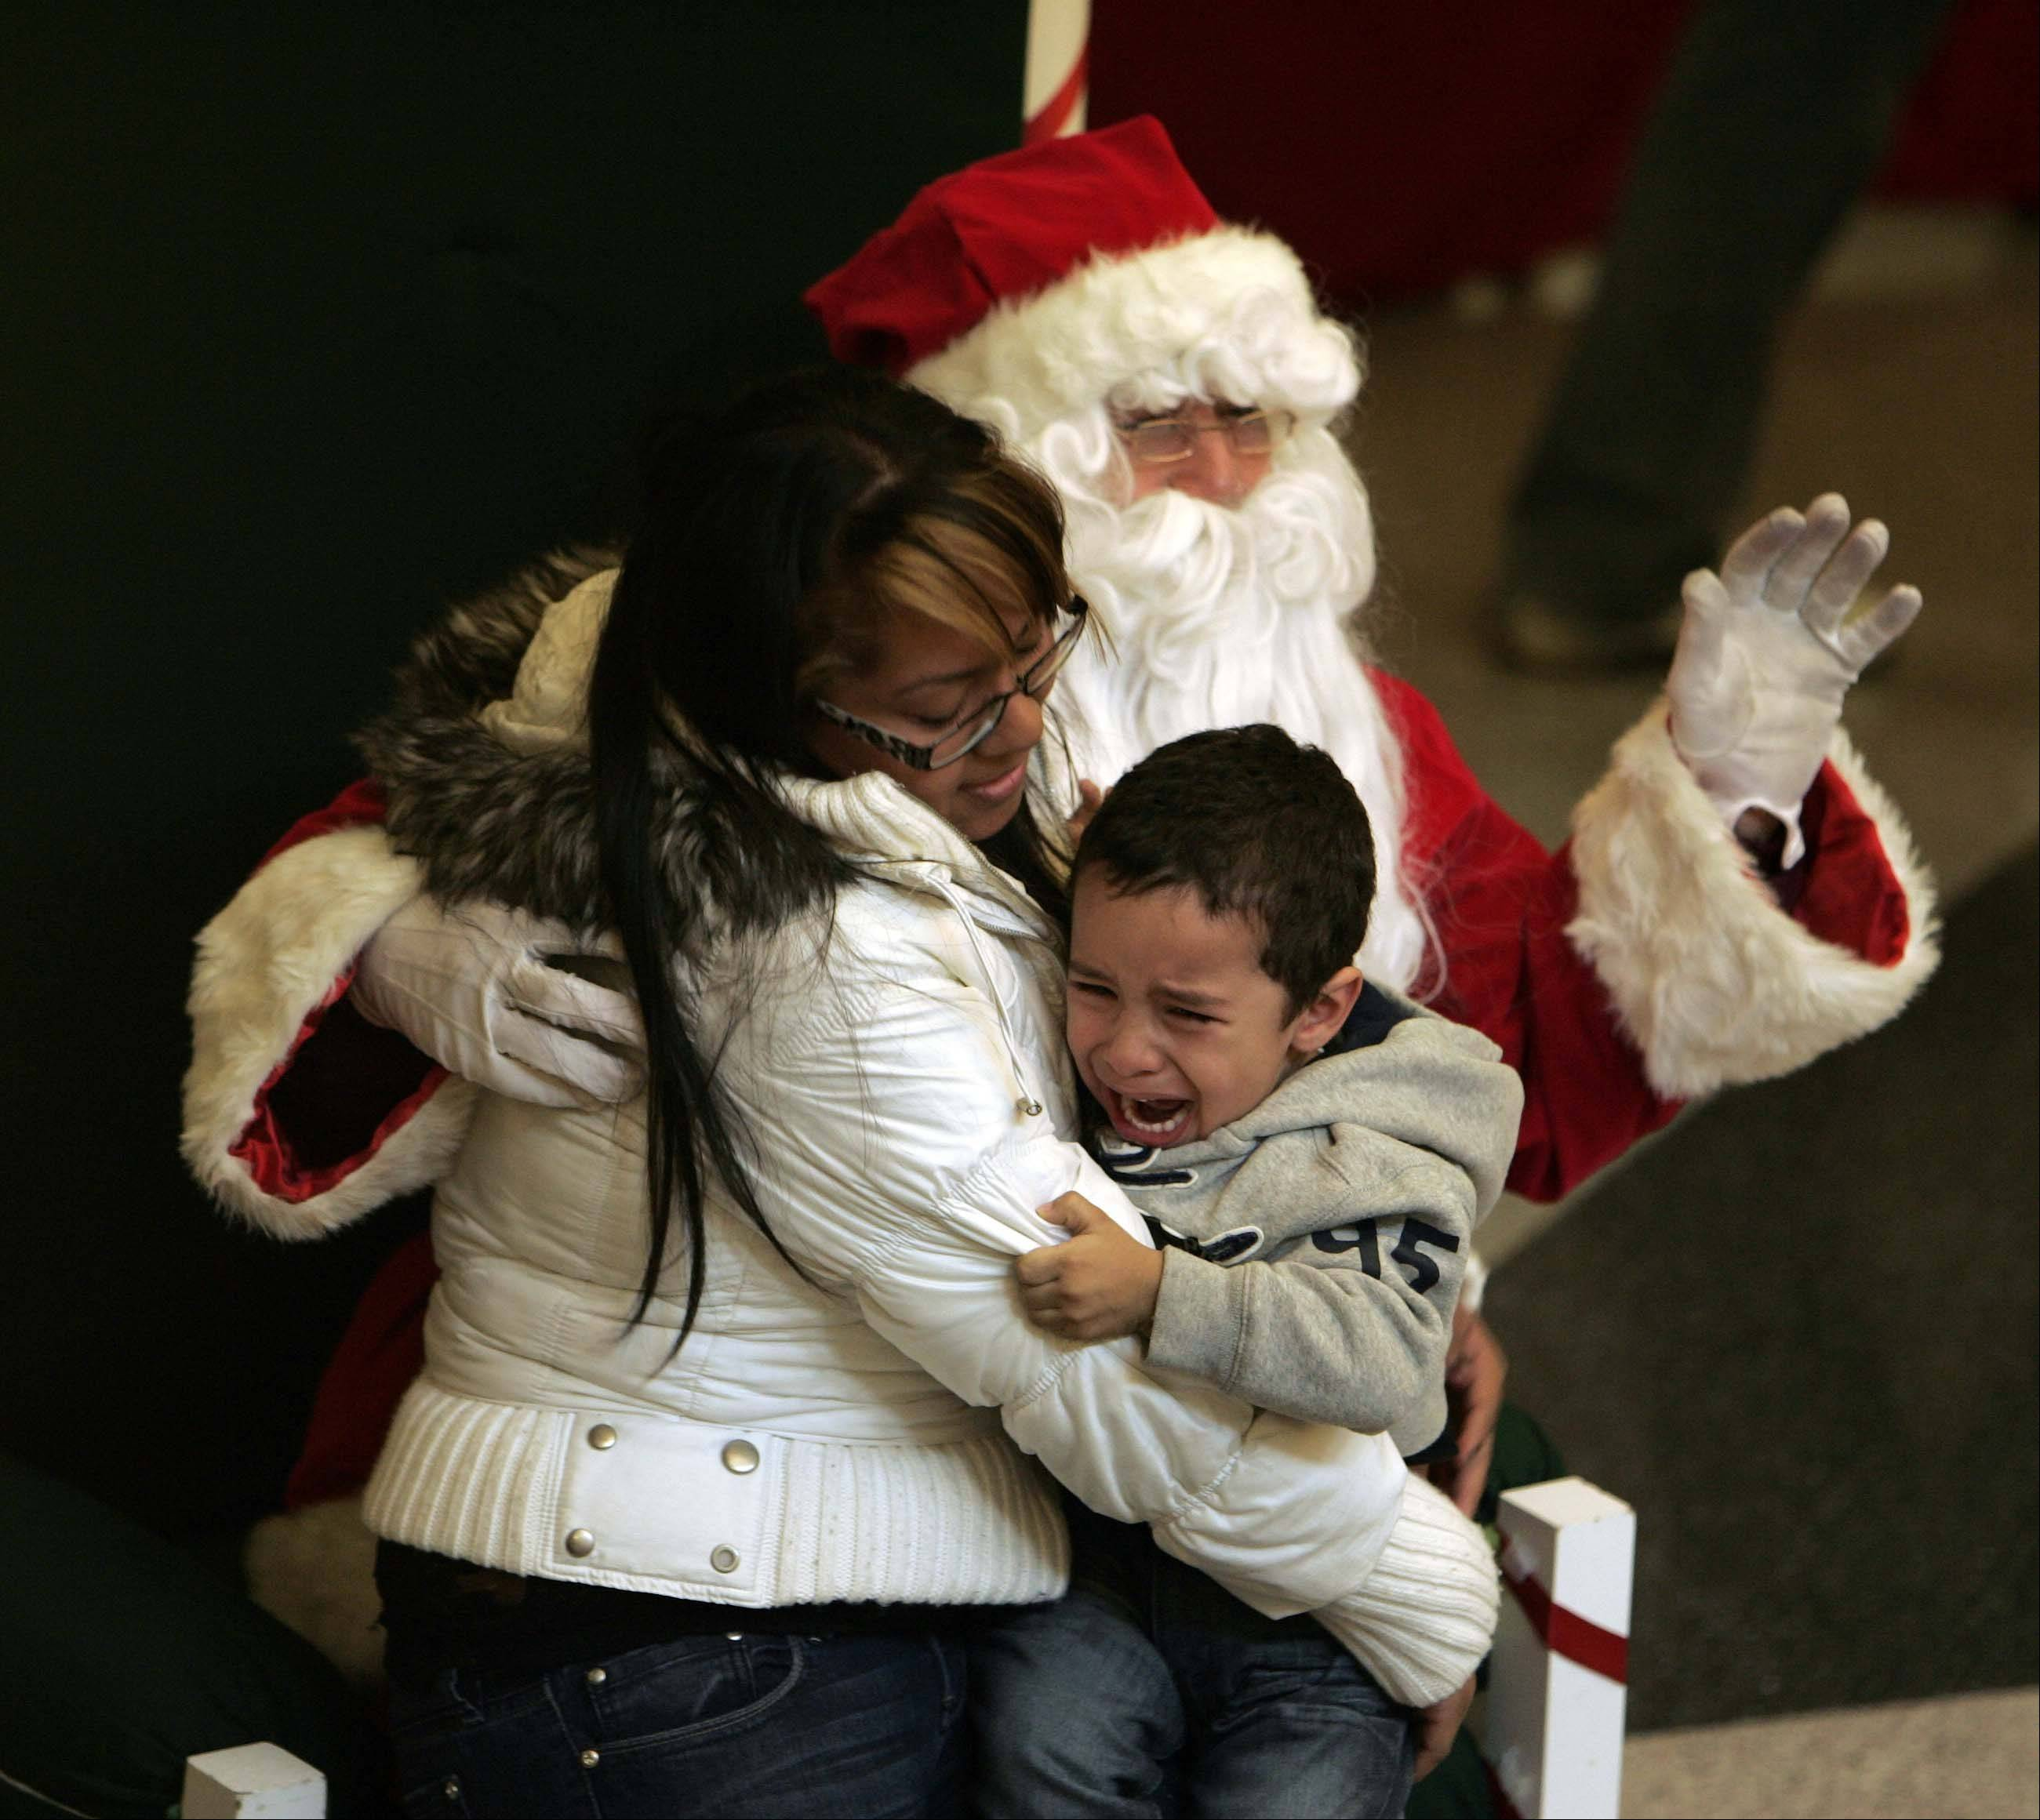 Brian Hill/bhill@dailyherald.com Sonia Albarran of Elgin tries to comfort her son Xavier Marques, 2, while visiting Santa during the Elgin Home for the Holidays, event Saturday at the Gail Borden Public Library in Elgin.